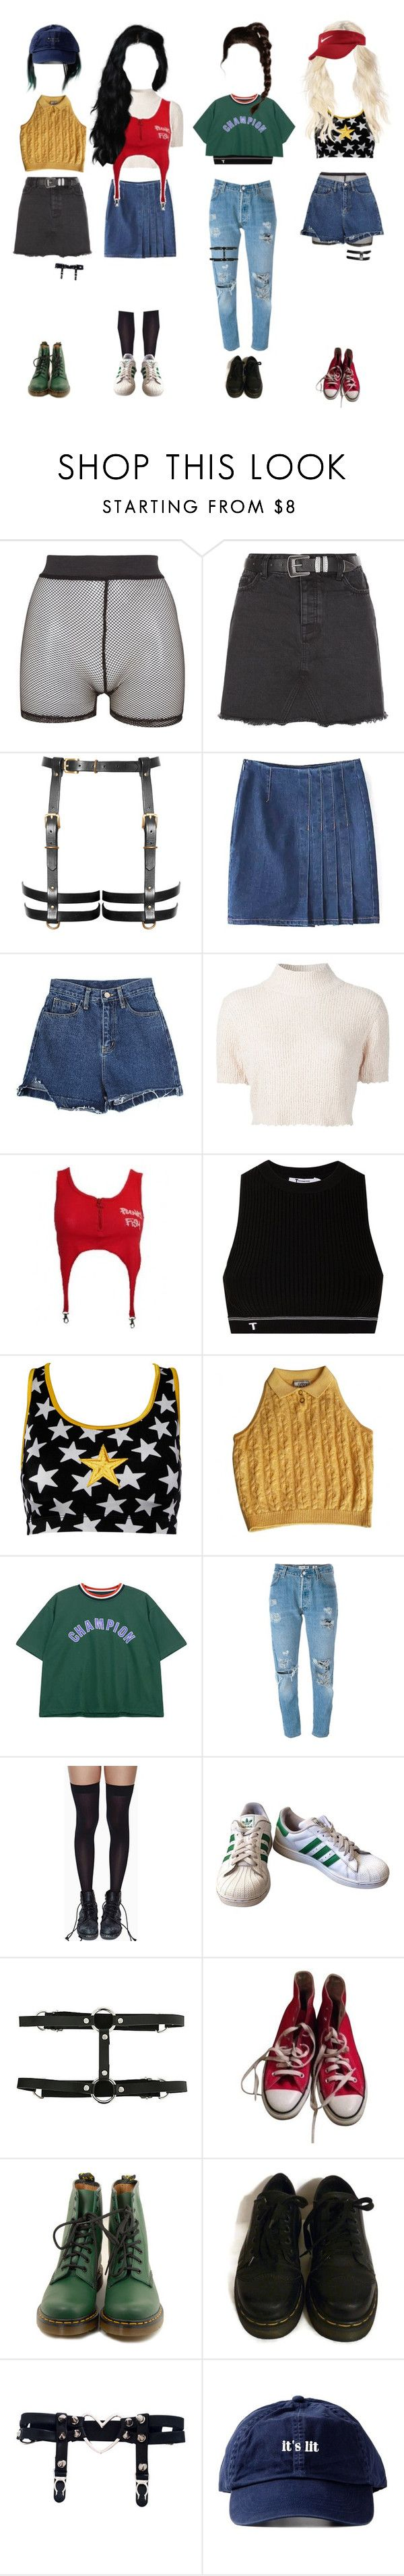 """Music Bank: goodbye stage ∴ River City"" by outline-official ❤ liked on Polyvore featuring Bitching & Junkfood, New Look, Rachel Comey, T By Alexander Wang, Norma Kamali, Versace, Chicnova Fashion, Levi's, Leg Avenue and adidas"